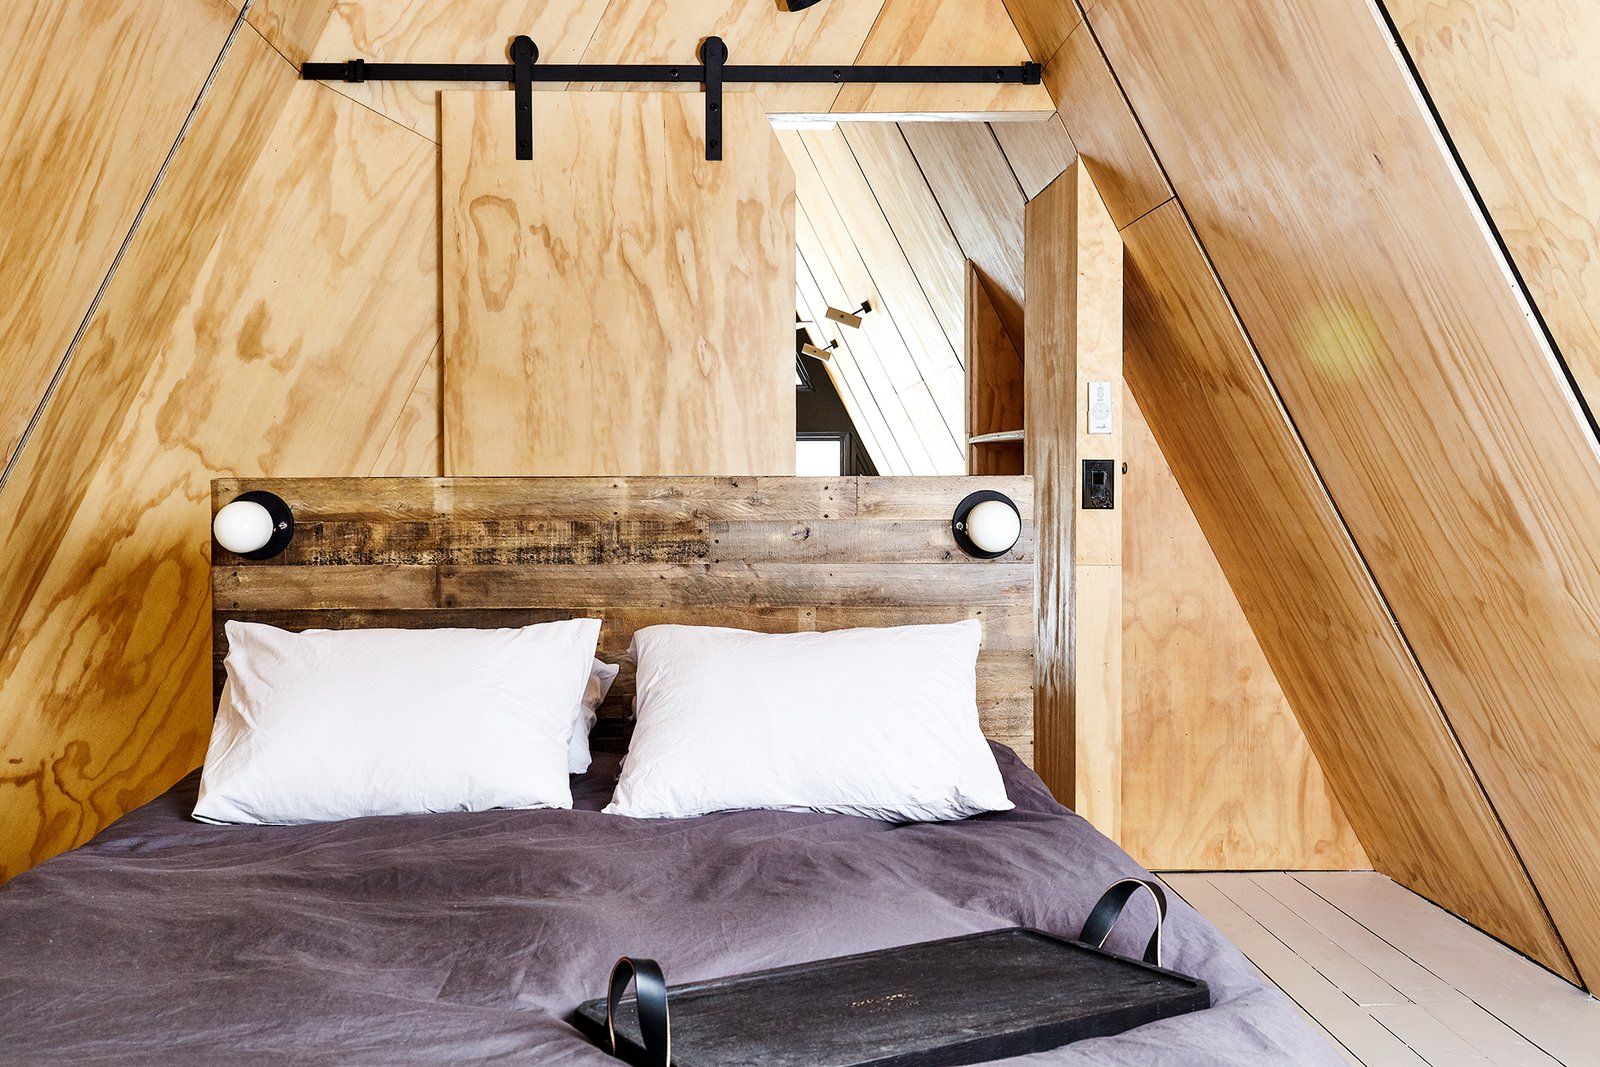 Bedroom, Wall, Bed, and Painted Wood A queen bedroom and full bath on the upper loft level opens to a private deck overlooking the woods.  Best Bedroom Painted Wood Bed Photos from Get Cozy in This Renovated A-Frame Cabin in the Woods